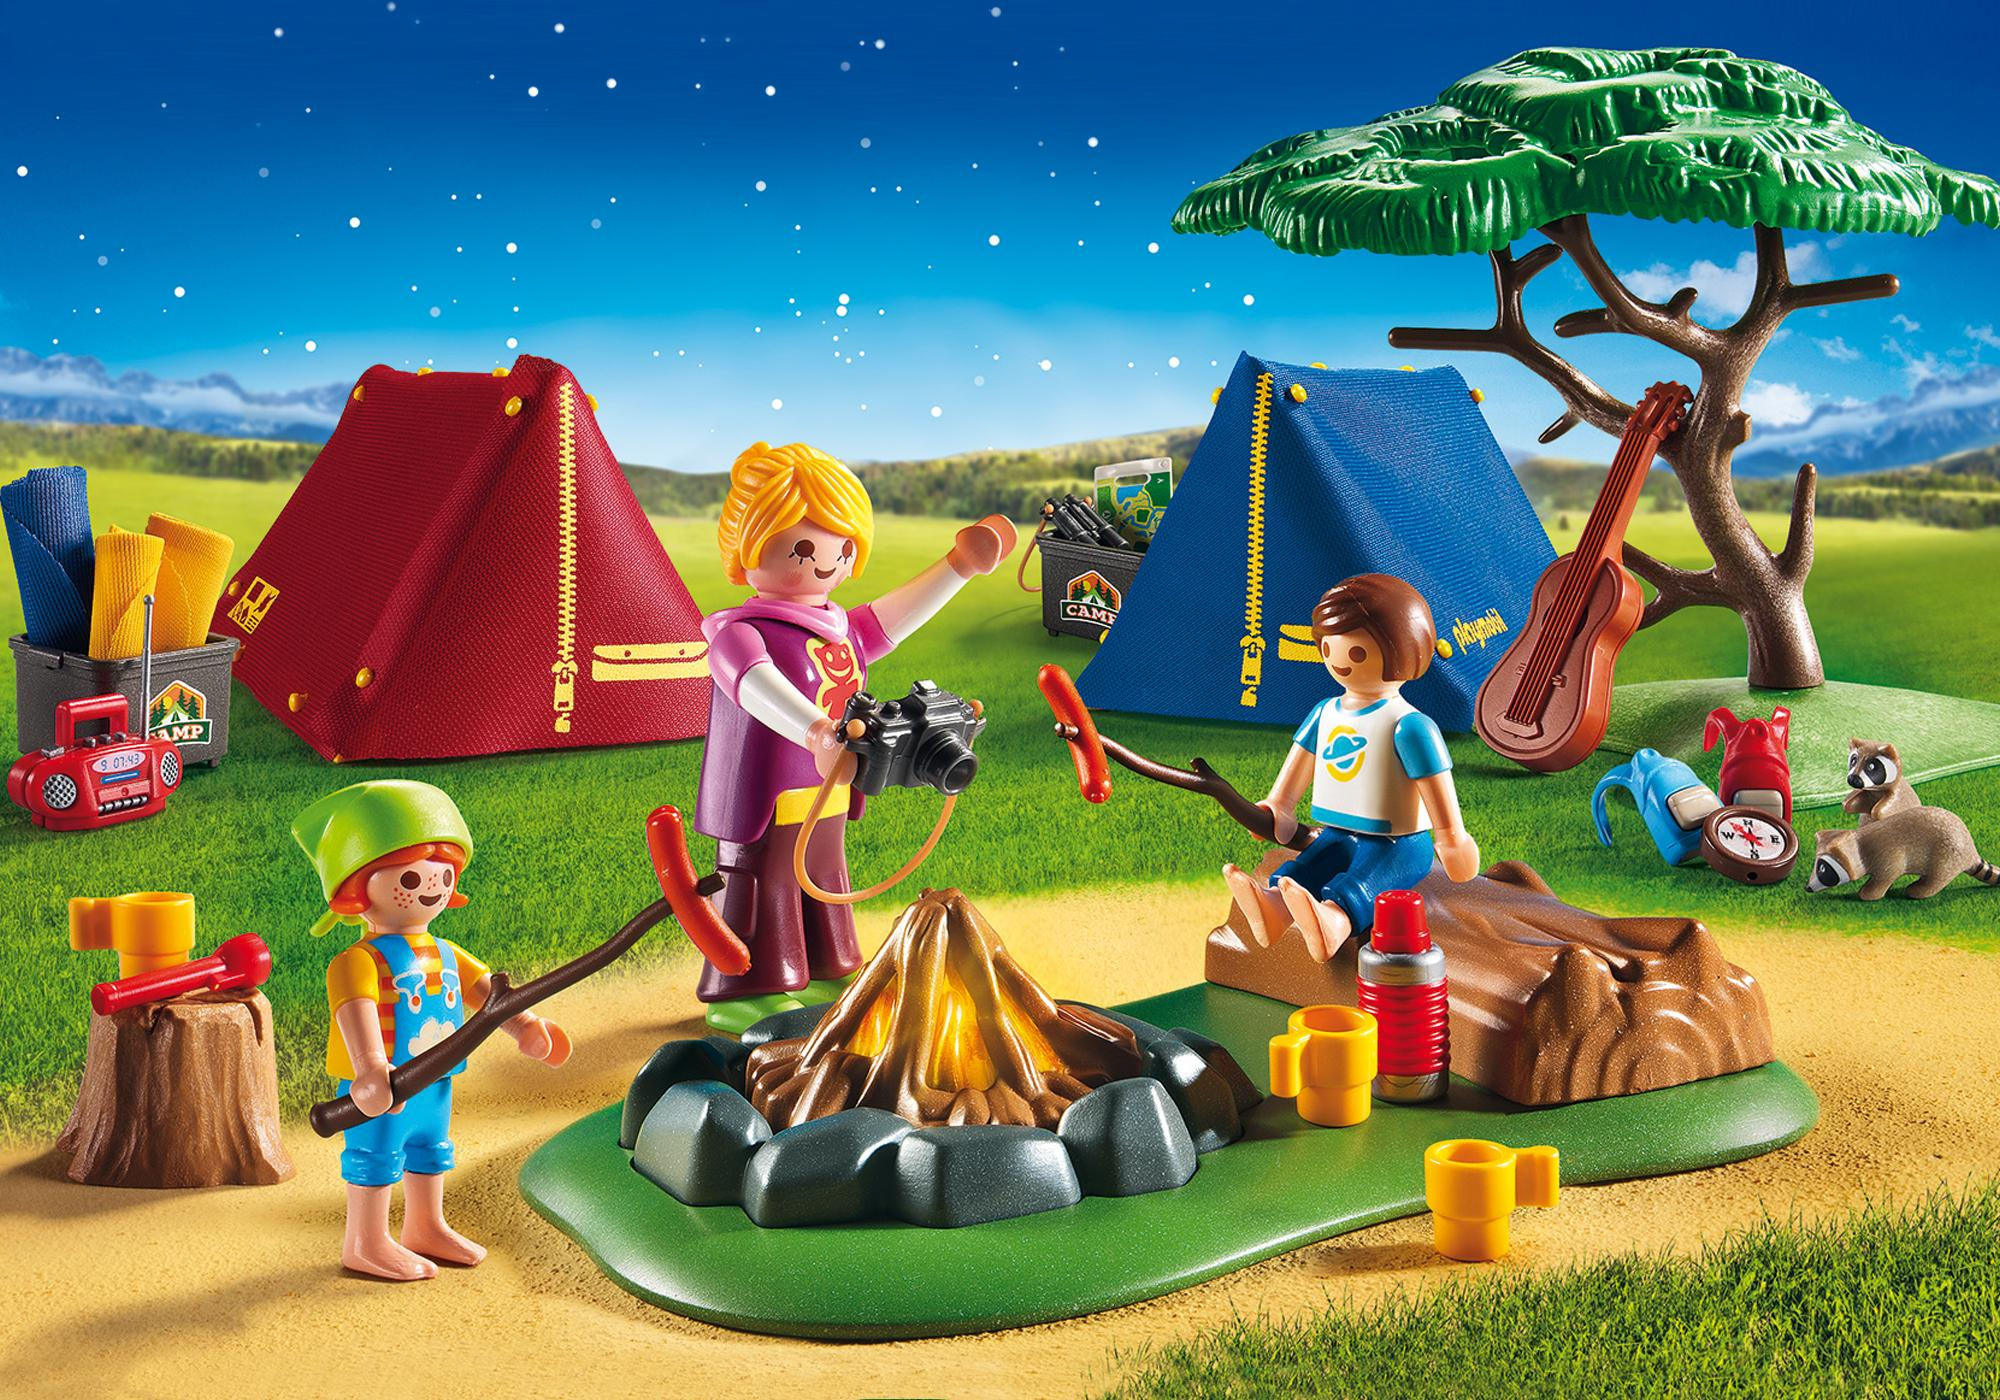 http://media.playmobil.com/i/playmobil/6888_product_detail/Zeltlager mit LED-Lagerfeuer